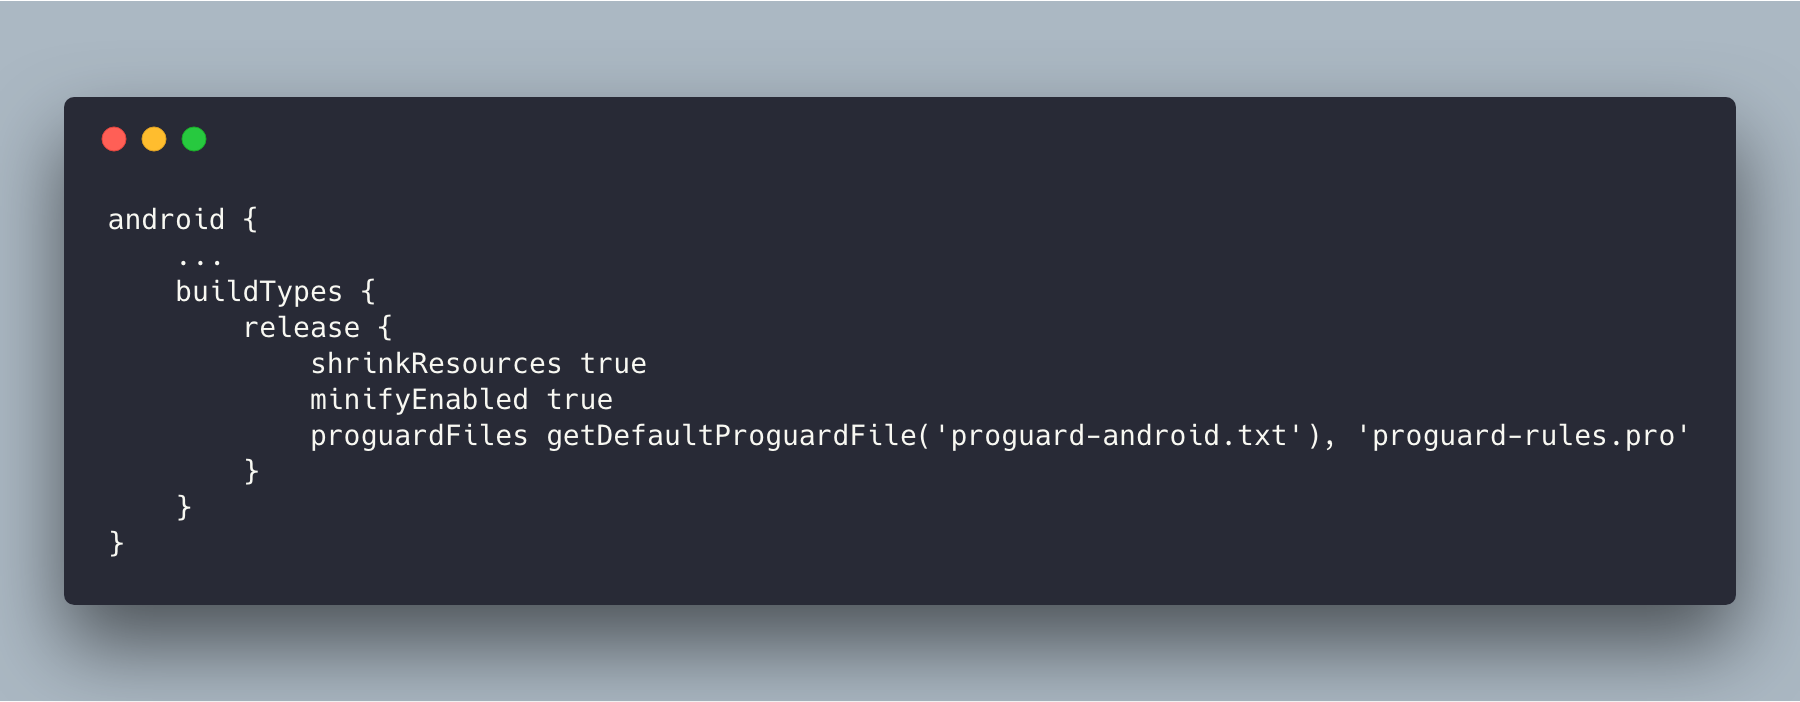 build.gradle file with shrinkResources and minifyEnabled properties enabled